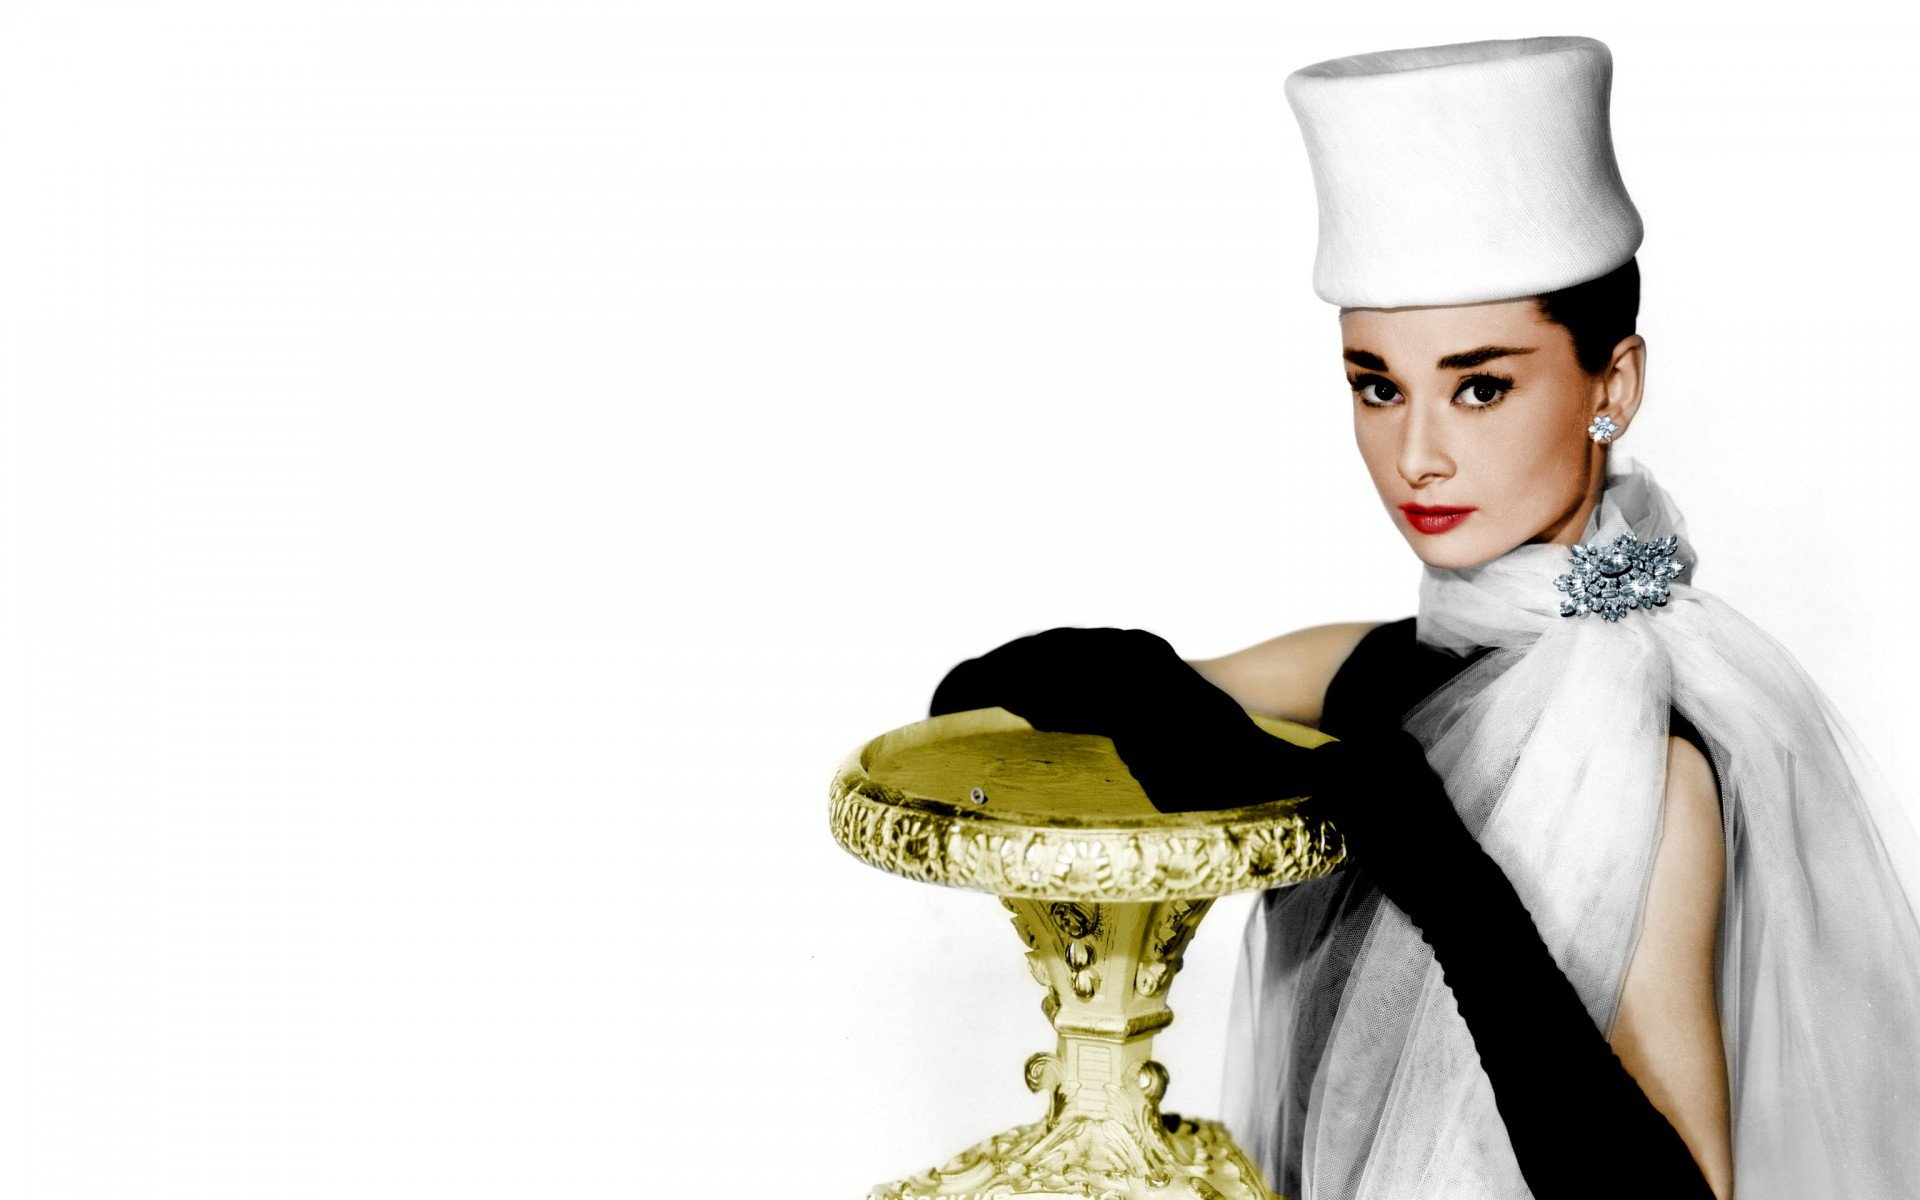 Audrey Hepburn Quote Wallpaper Desktop wallpaper 1920x1200